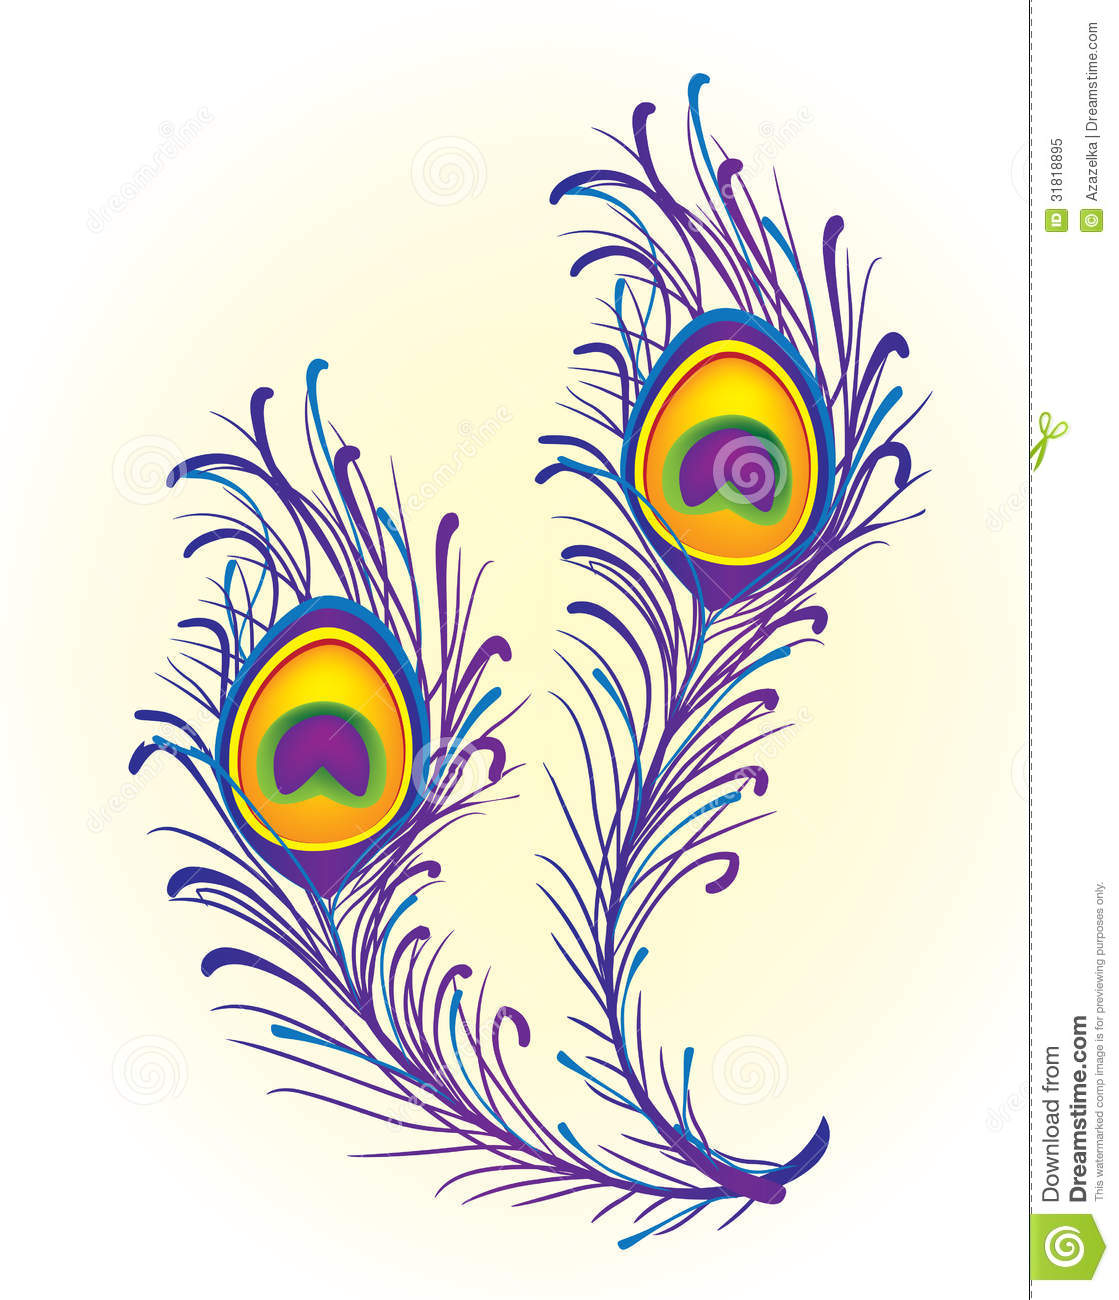 Peacock Feather Royalty Free Stock Photo Image 31818895